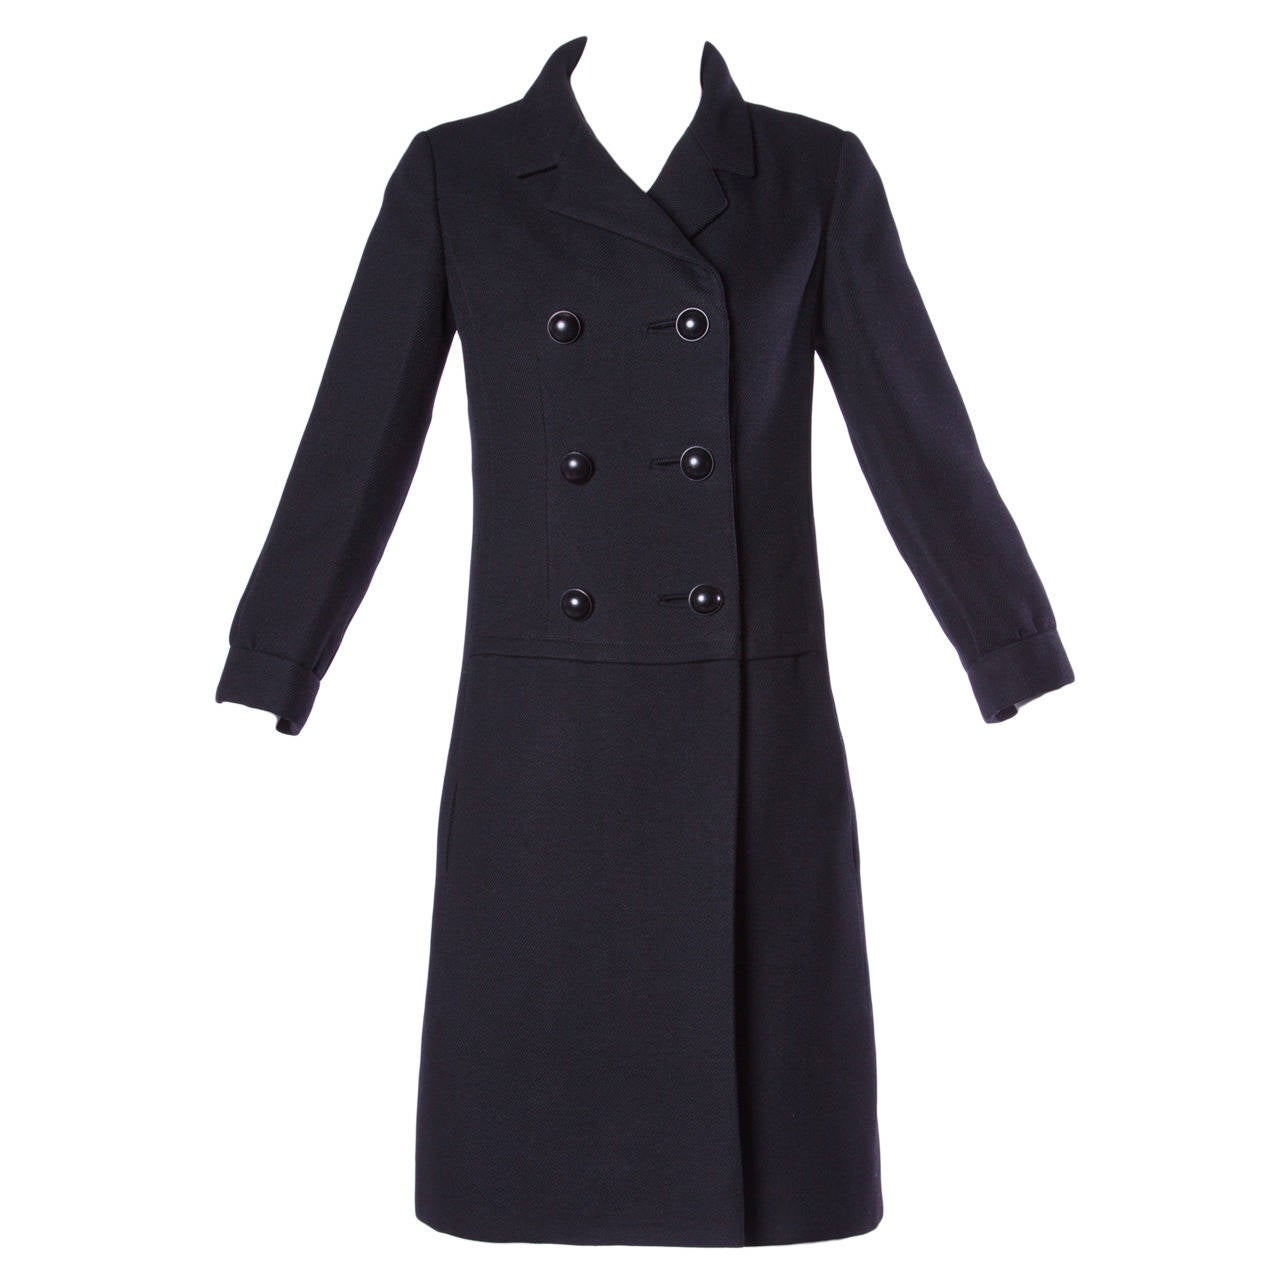 Black pea coat for women